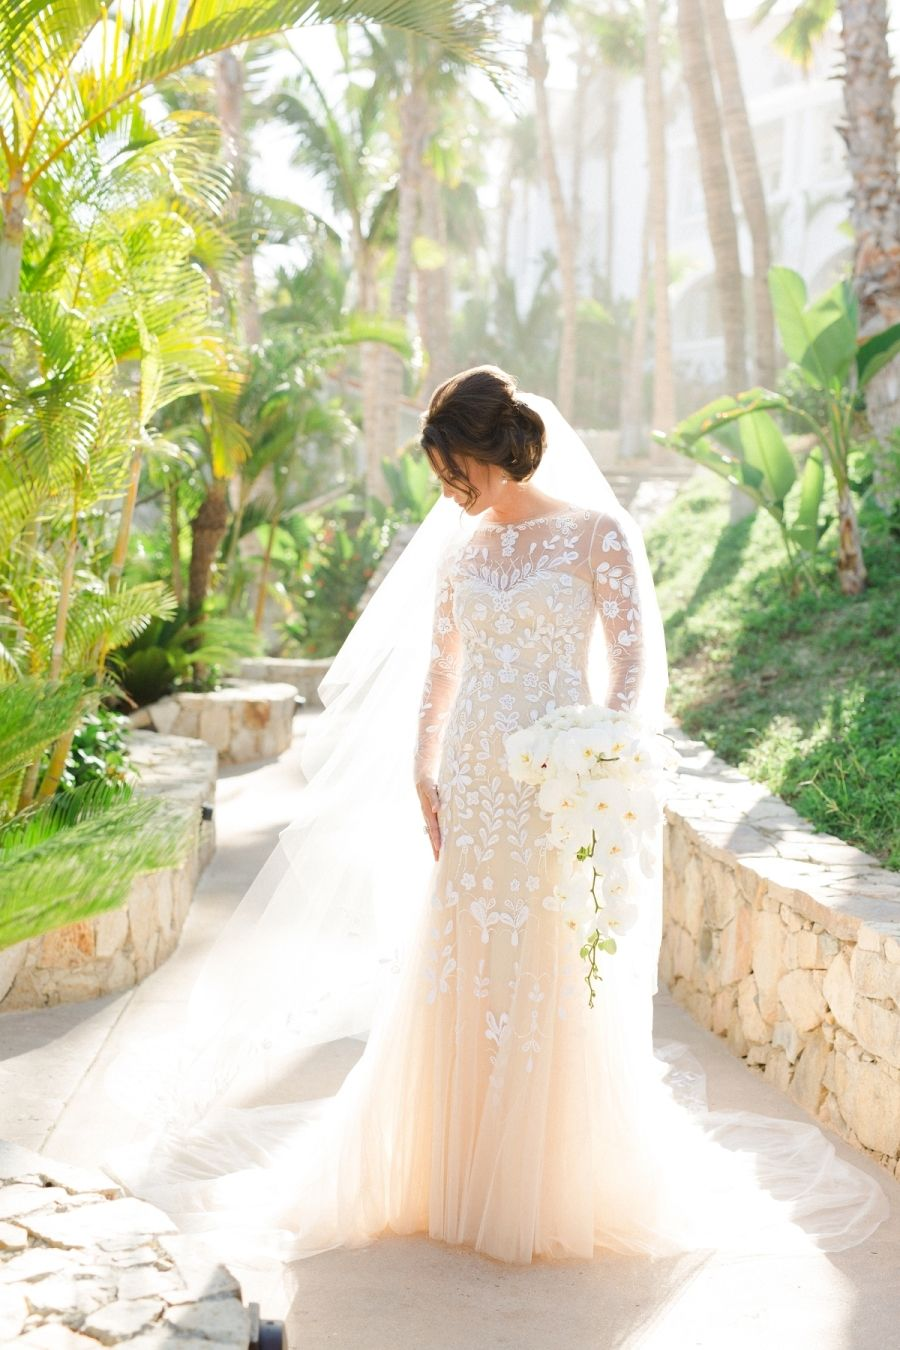 Dear readers, get ready to pick yourjaw up off the floor,because this#wedding is beyond gorg. For starters? The Bride woreCarolina Herreraand the ceremony?  #WeddingDress #WeddingPhoto